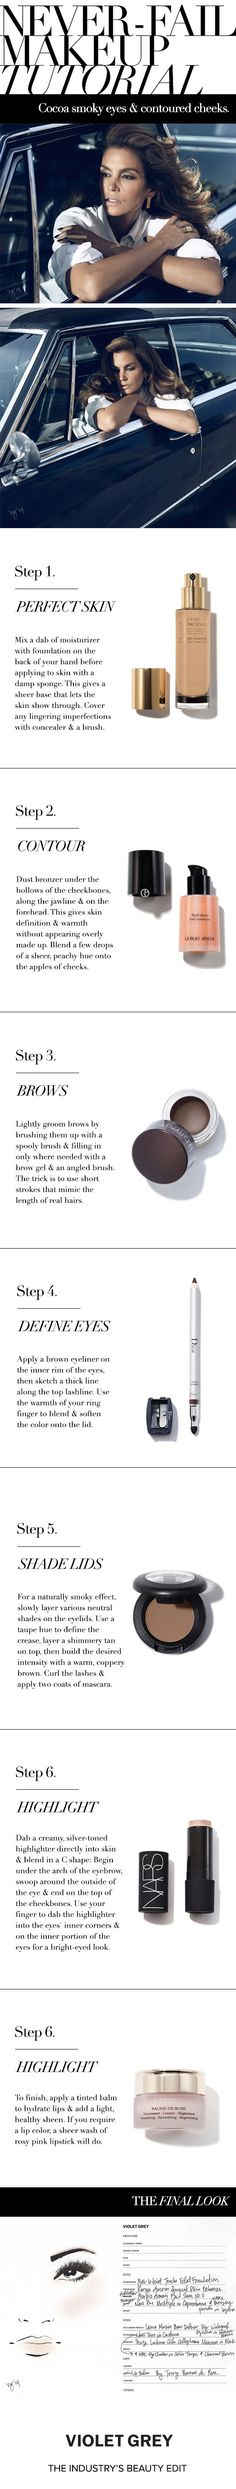 The Never-Fail Makeup Tutorial | Makeup artist Dotti's guide to Cindy Crawford's cocoa smoky eyes and contoured cheeks. | #VioletGrey, the Industry's Beauty Edit